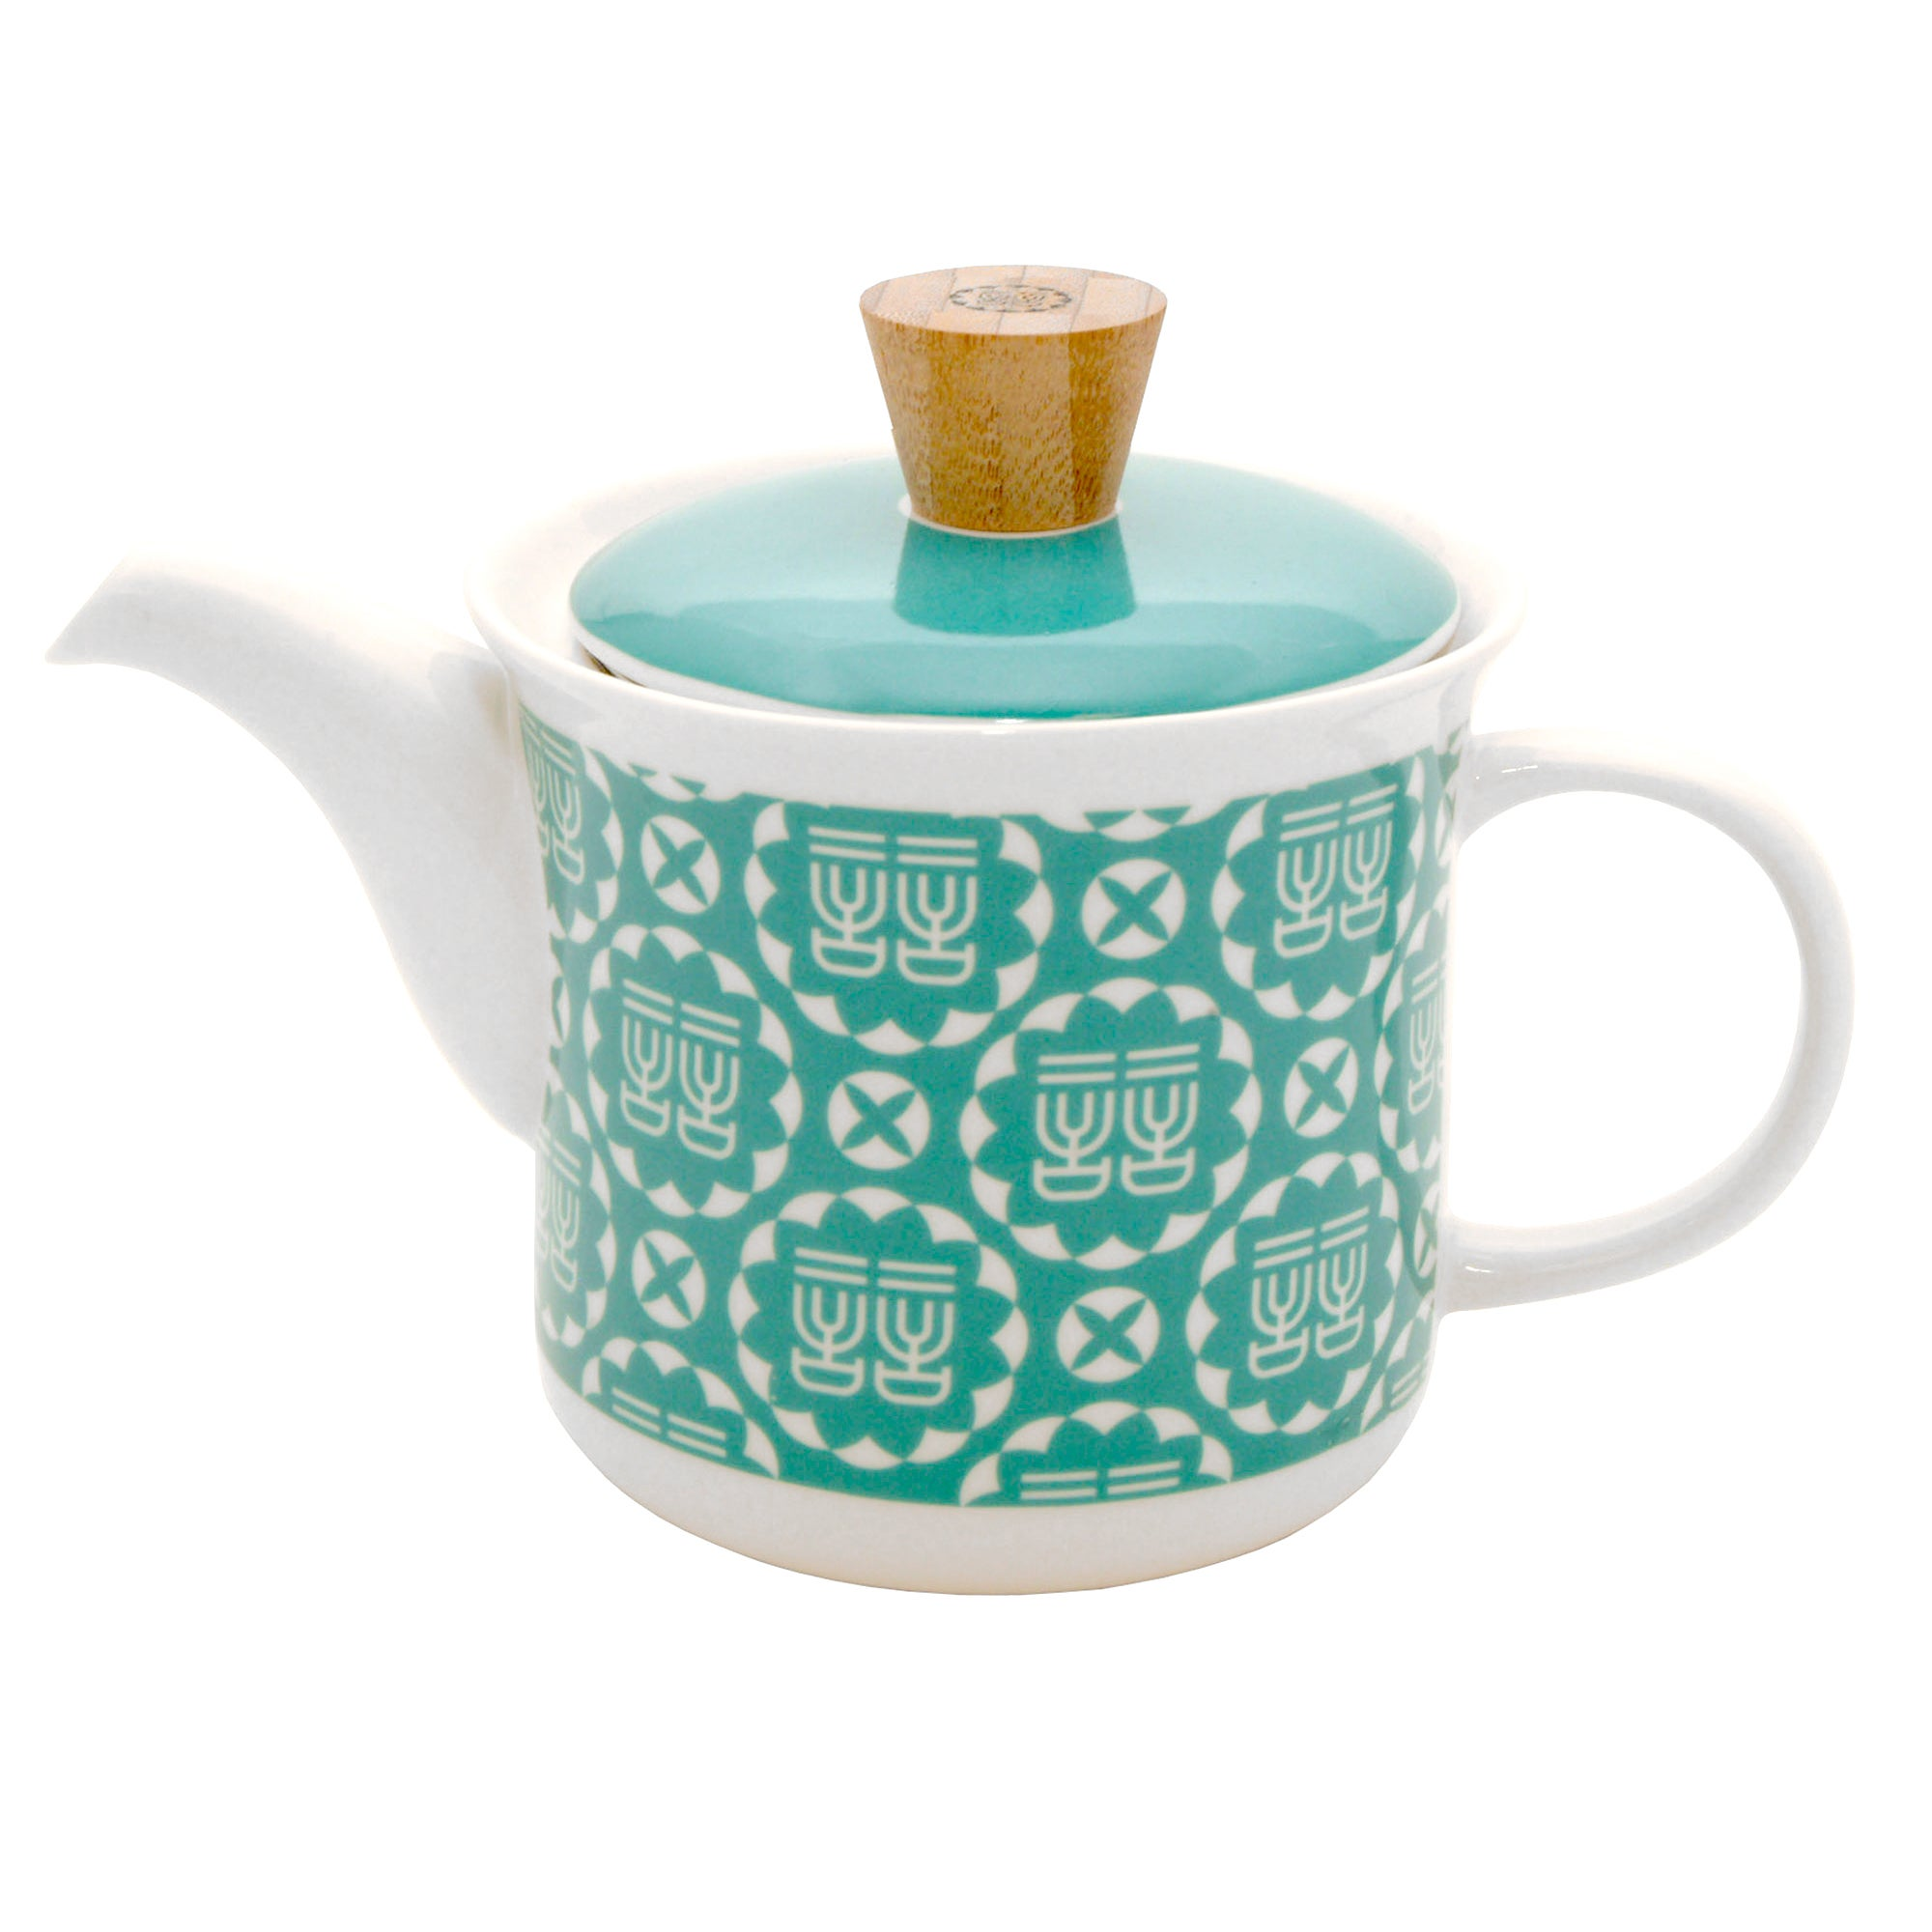 Ching He Huang Collection Teapot with Infuser